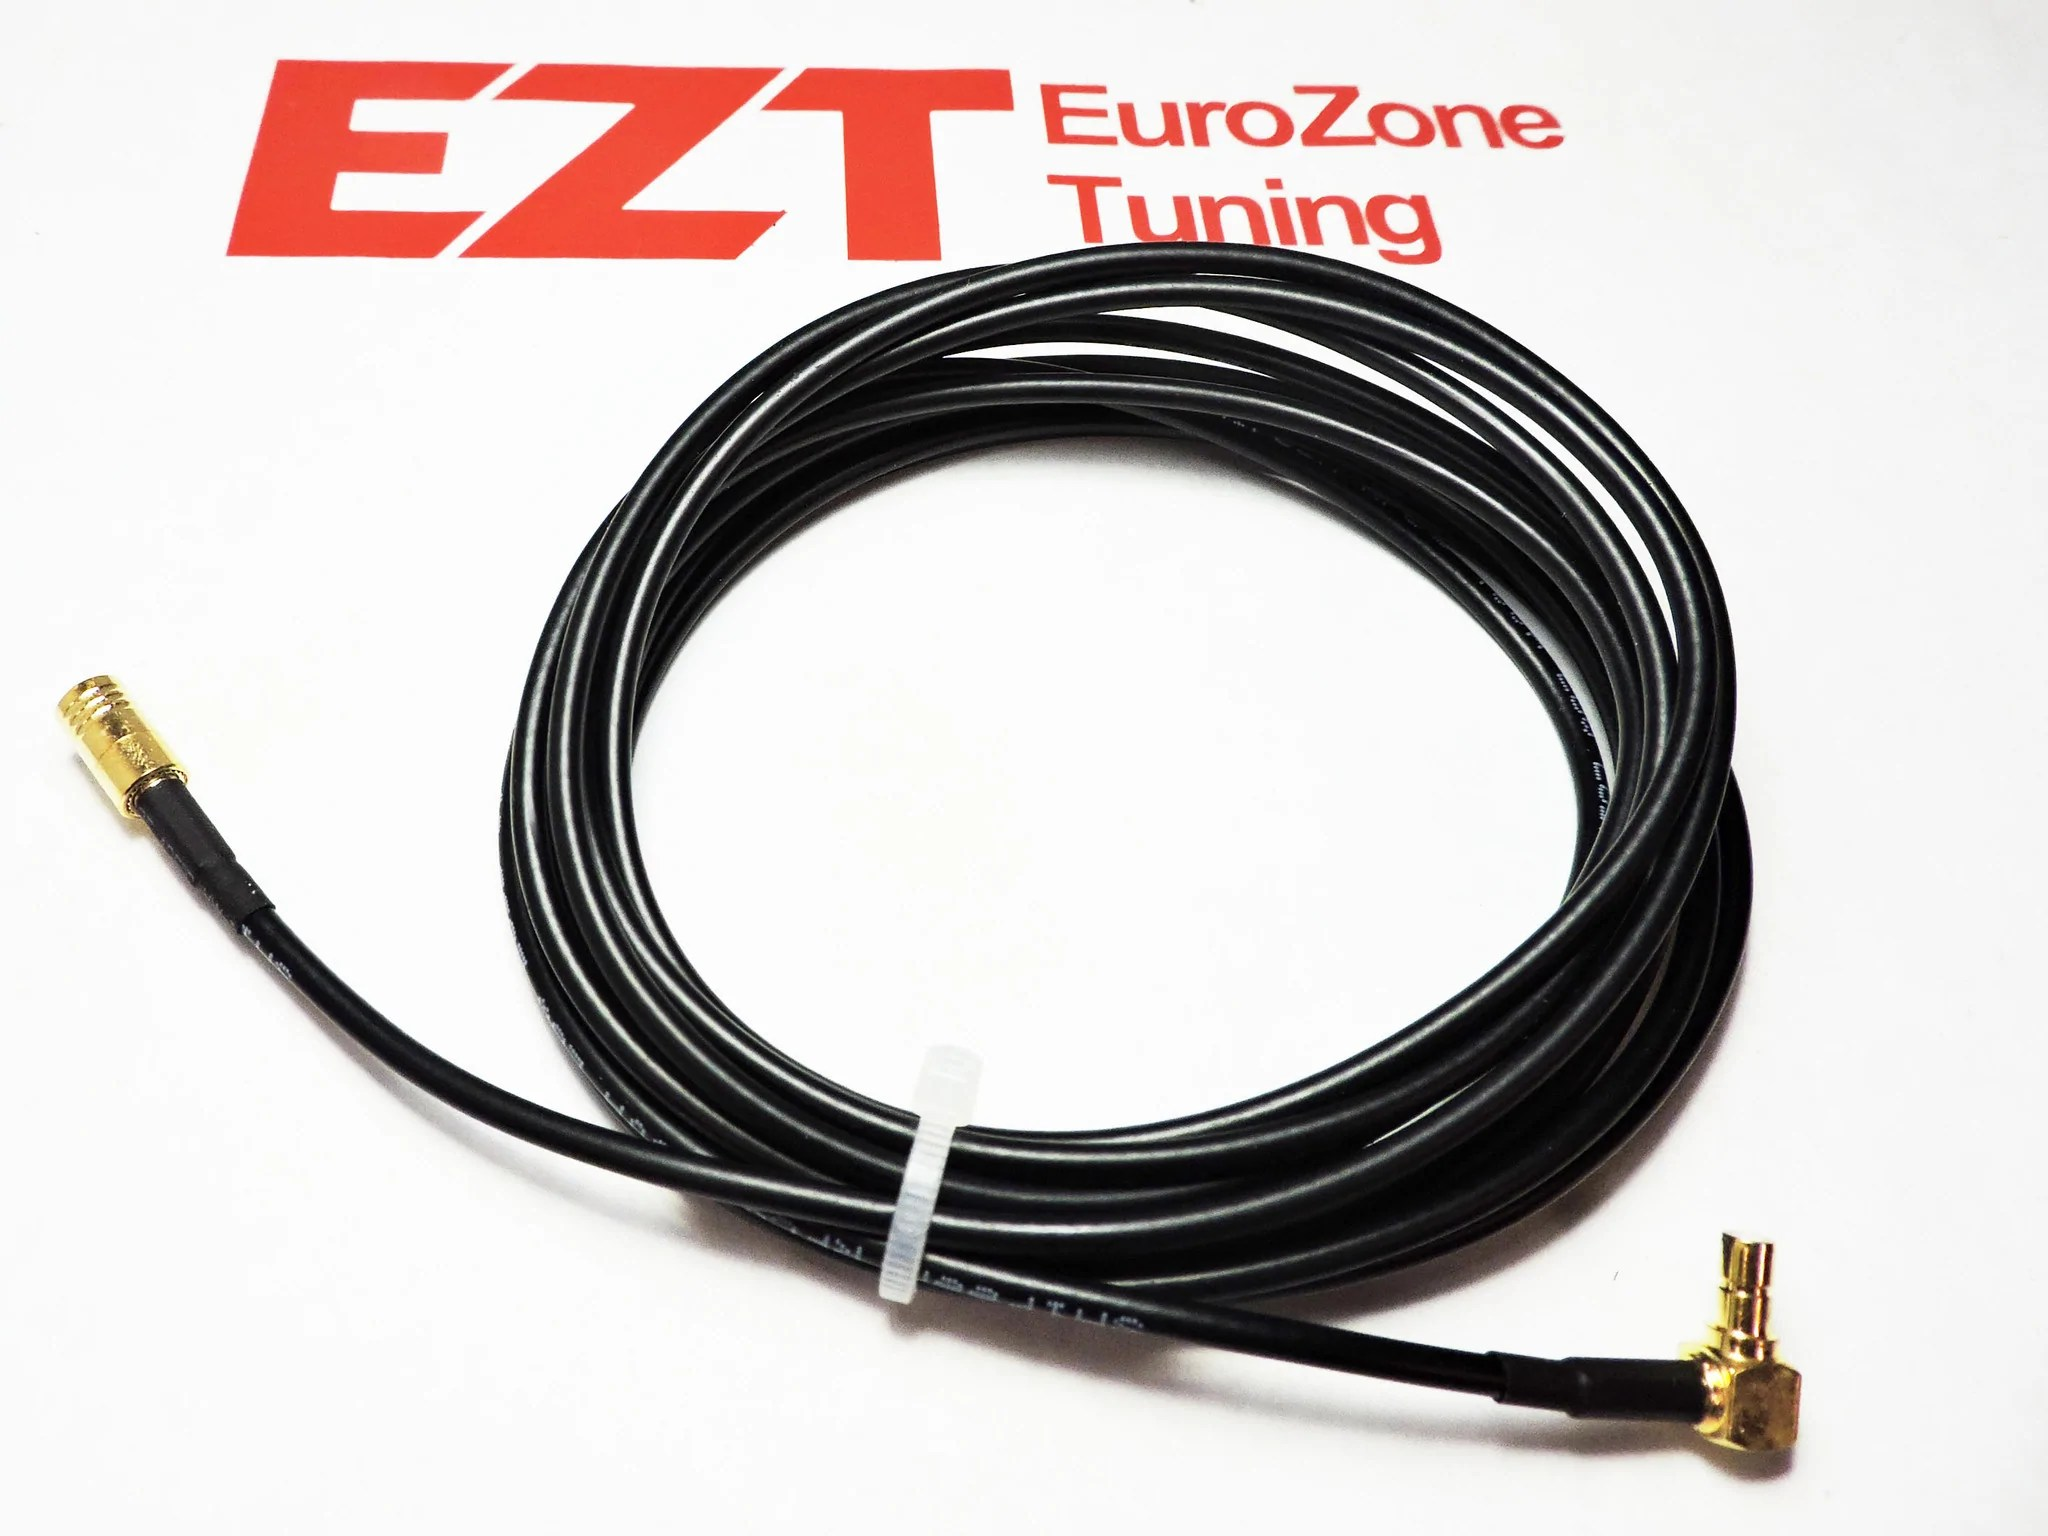 hight resolution of vw sirius radio extension cable